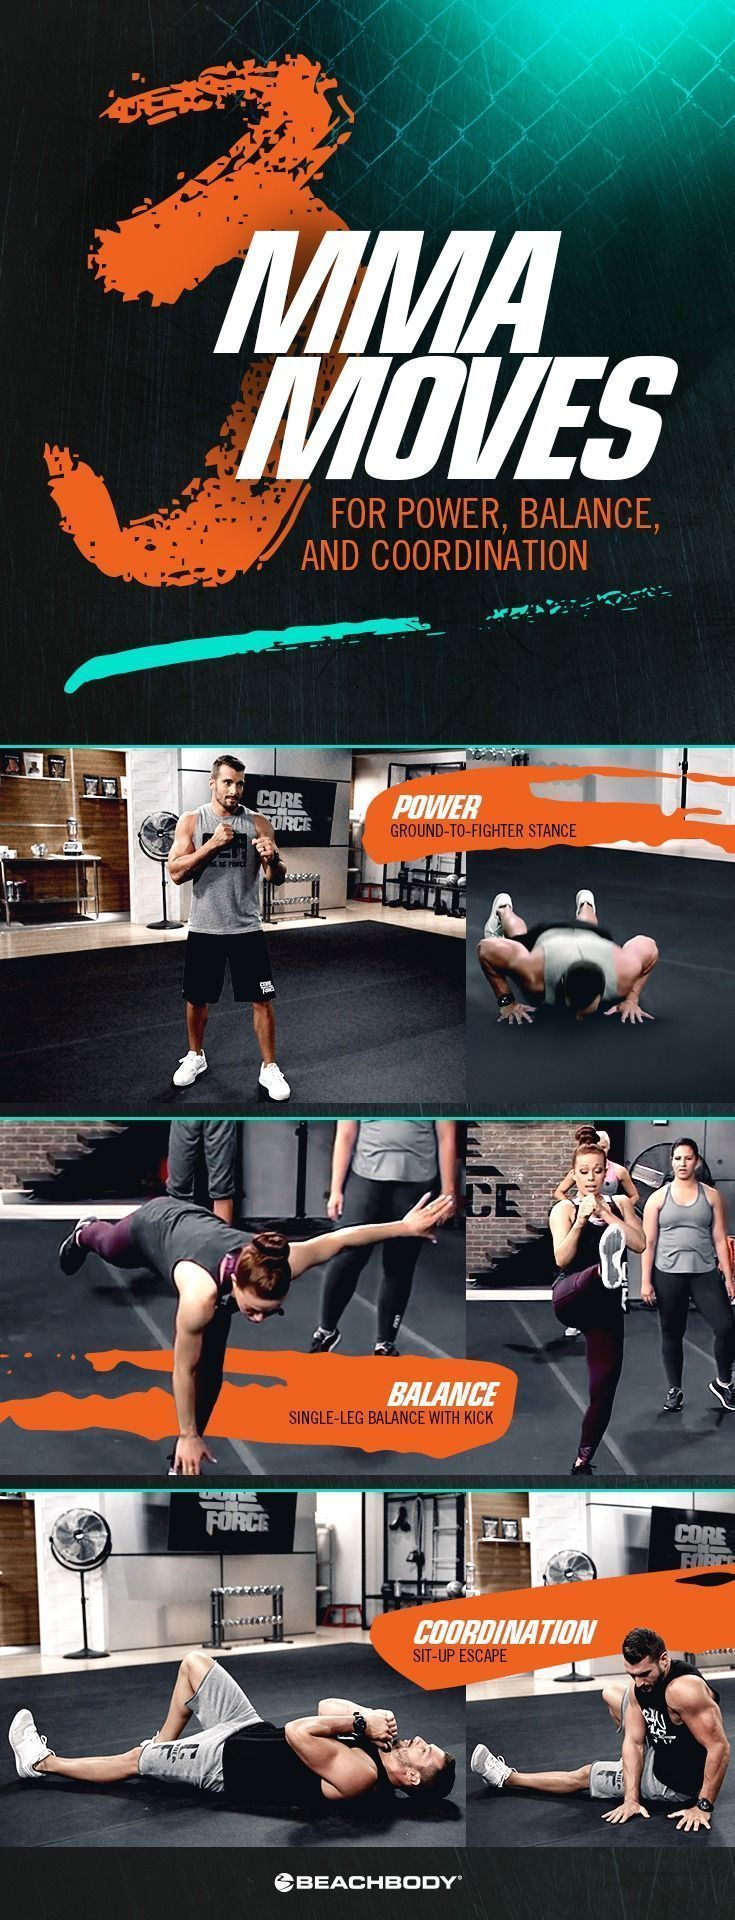 3 Fitness Results You Can Get From An Mma Workout In 2020 Mma Workout Workout Results Agility Workouts